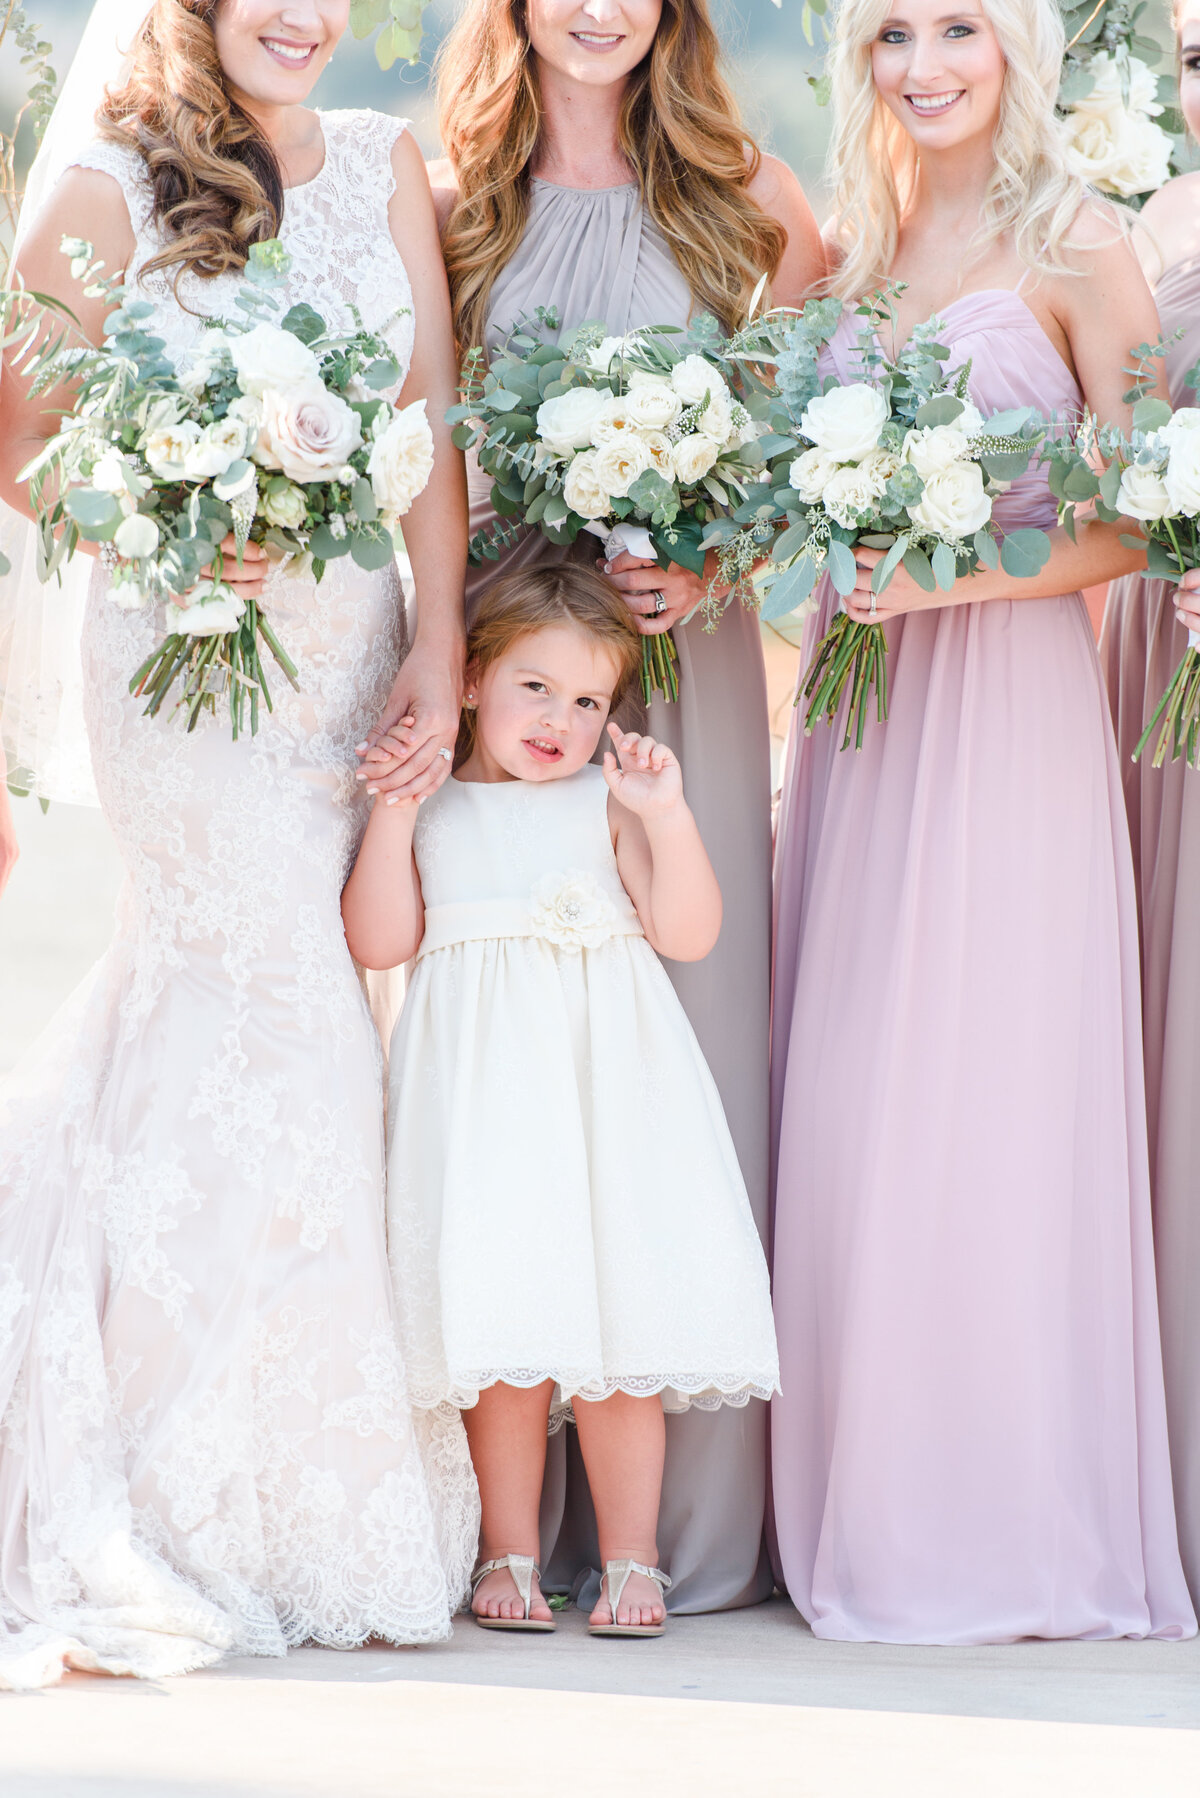 bridal party holding flower bouquet